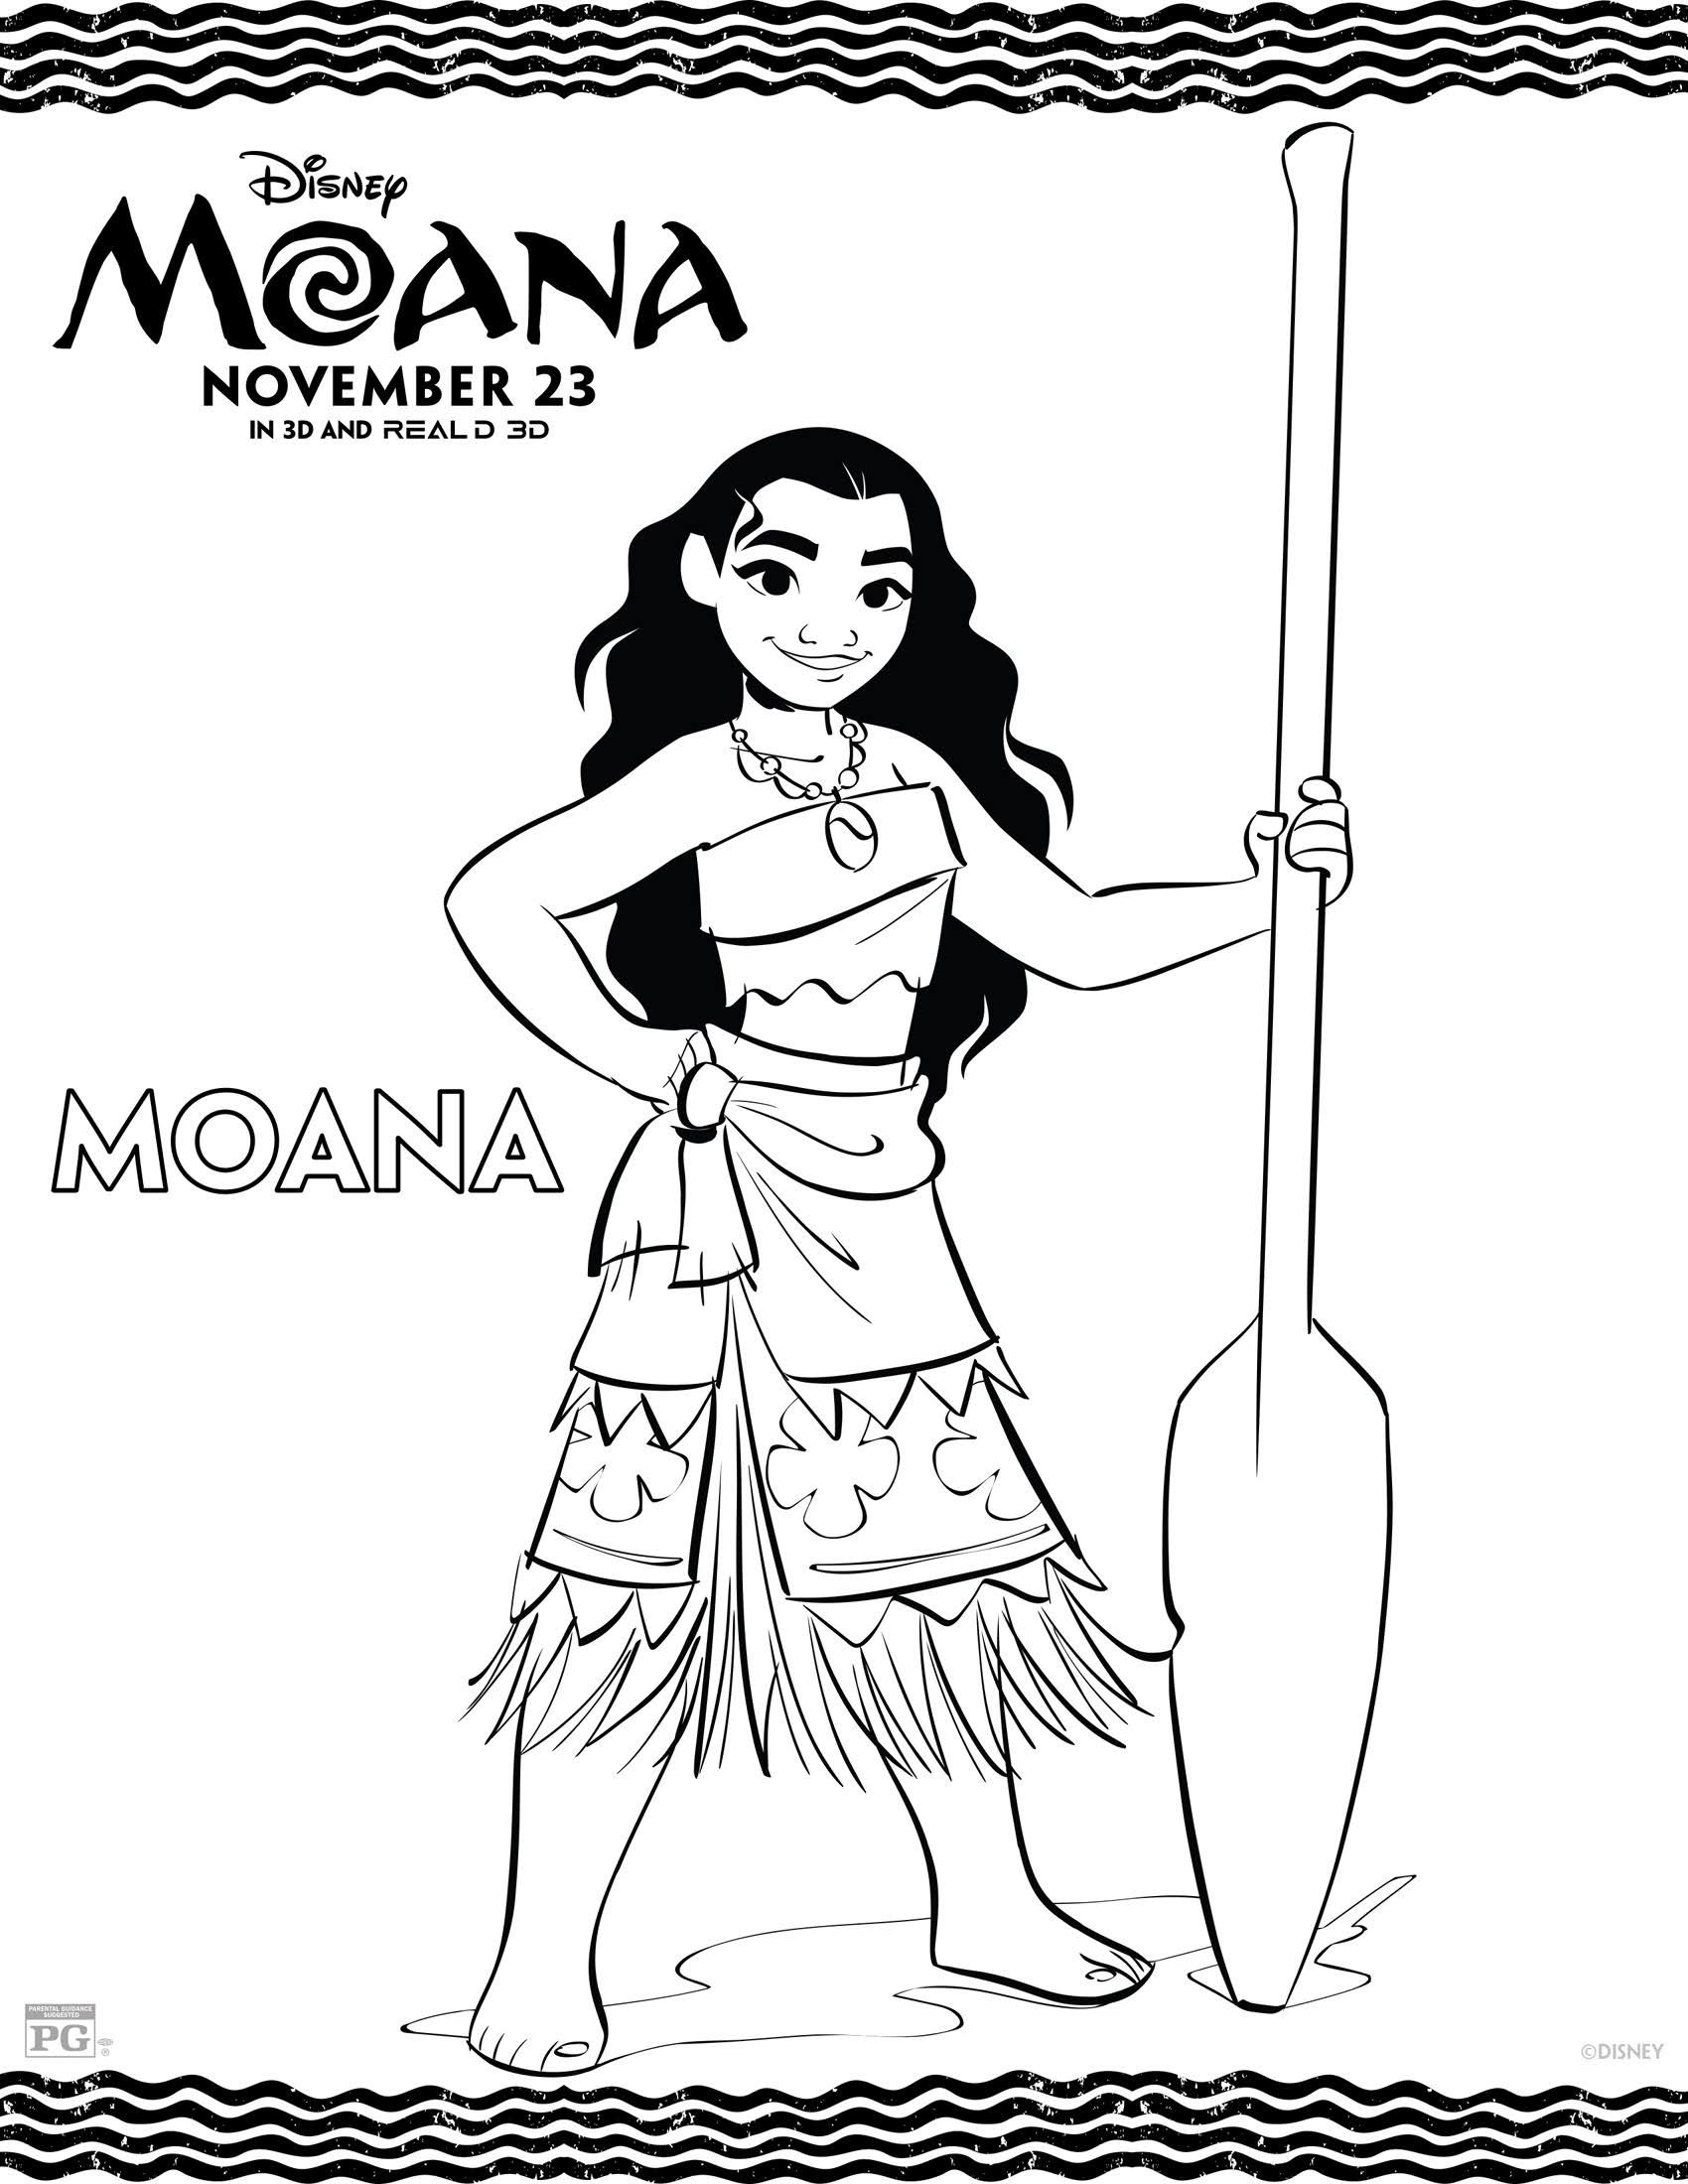 Disney princess birthday coloring pages - Disney S Moana Movie Review And Free Printable Coloring Pages